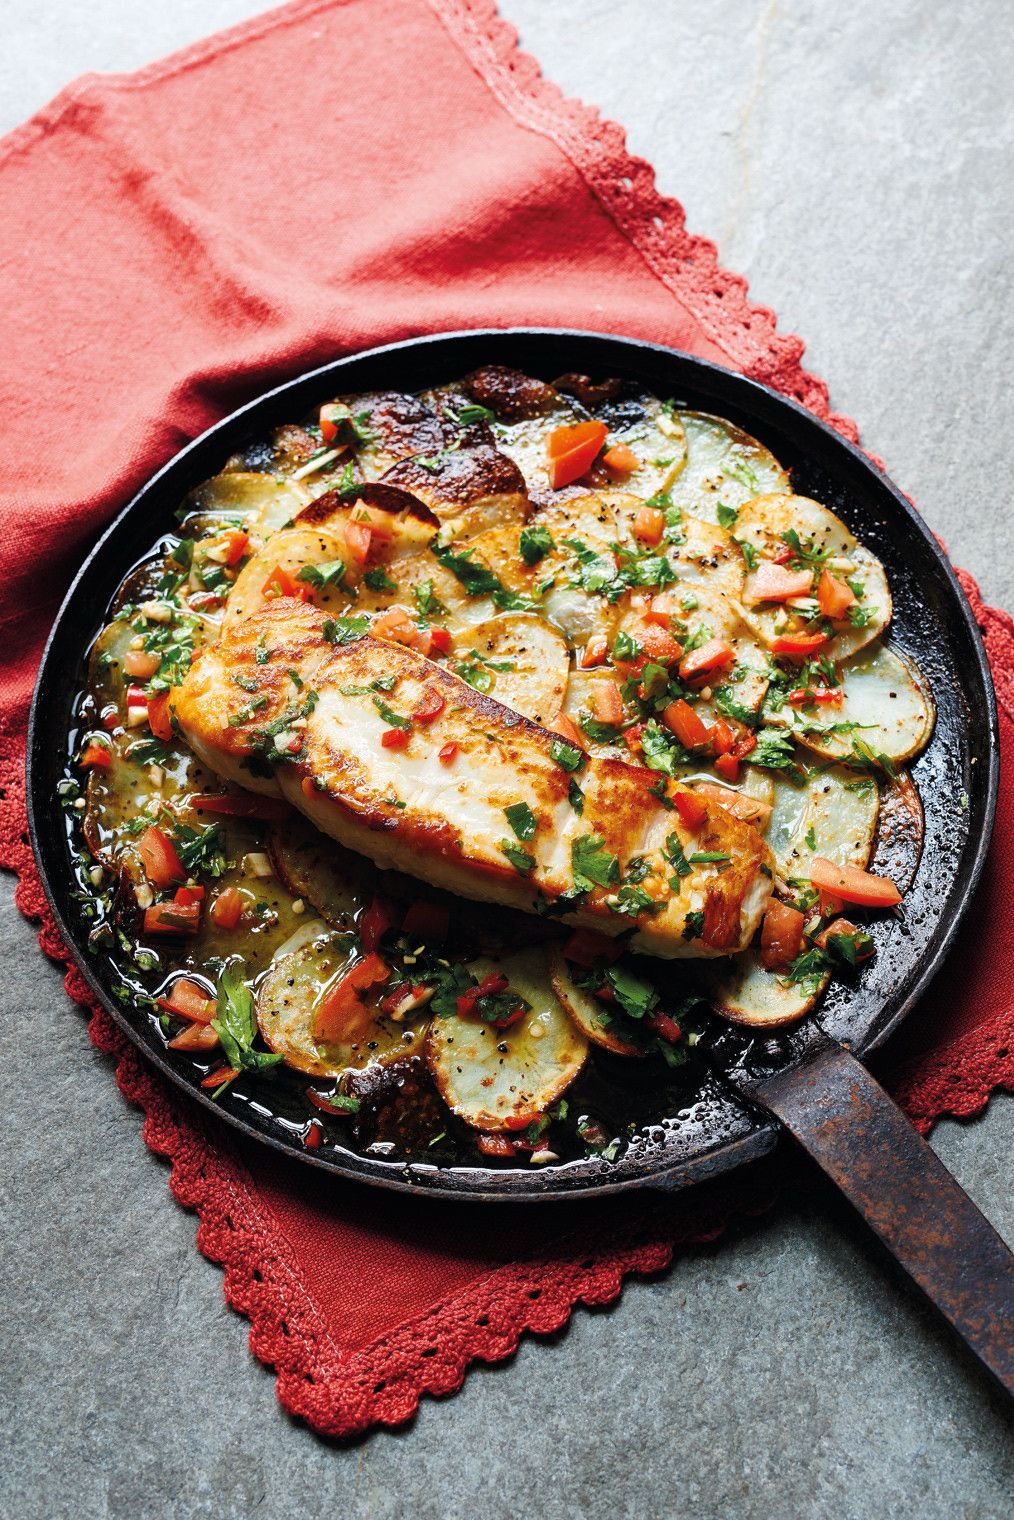 what to eat tonight  halibut baked over spicy potatoes an easy fish supper with amazing